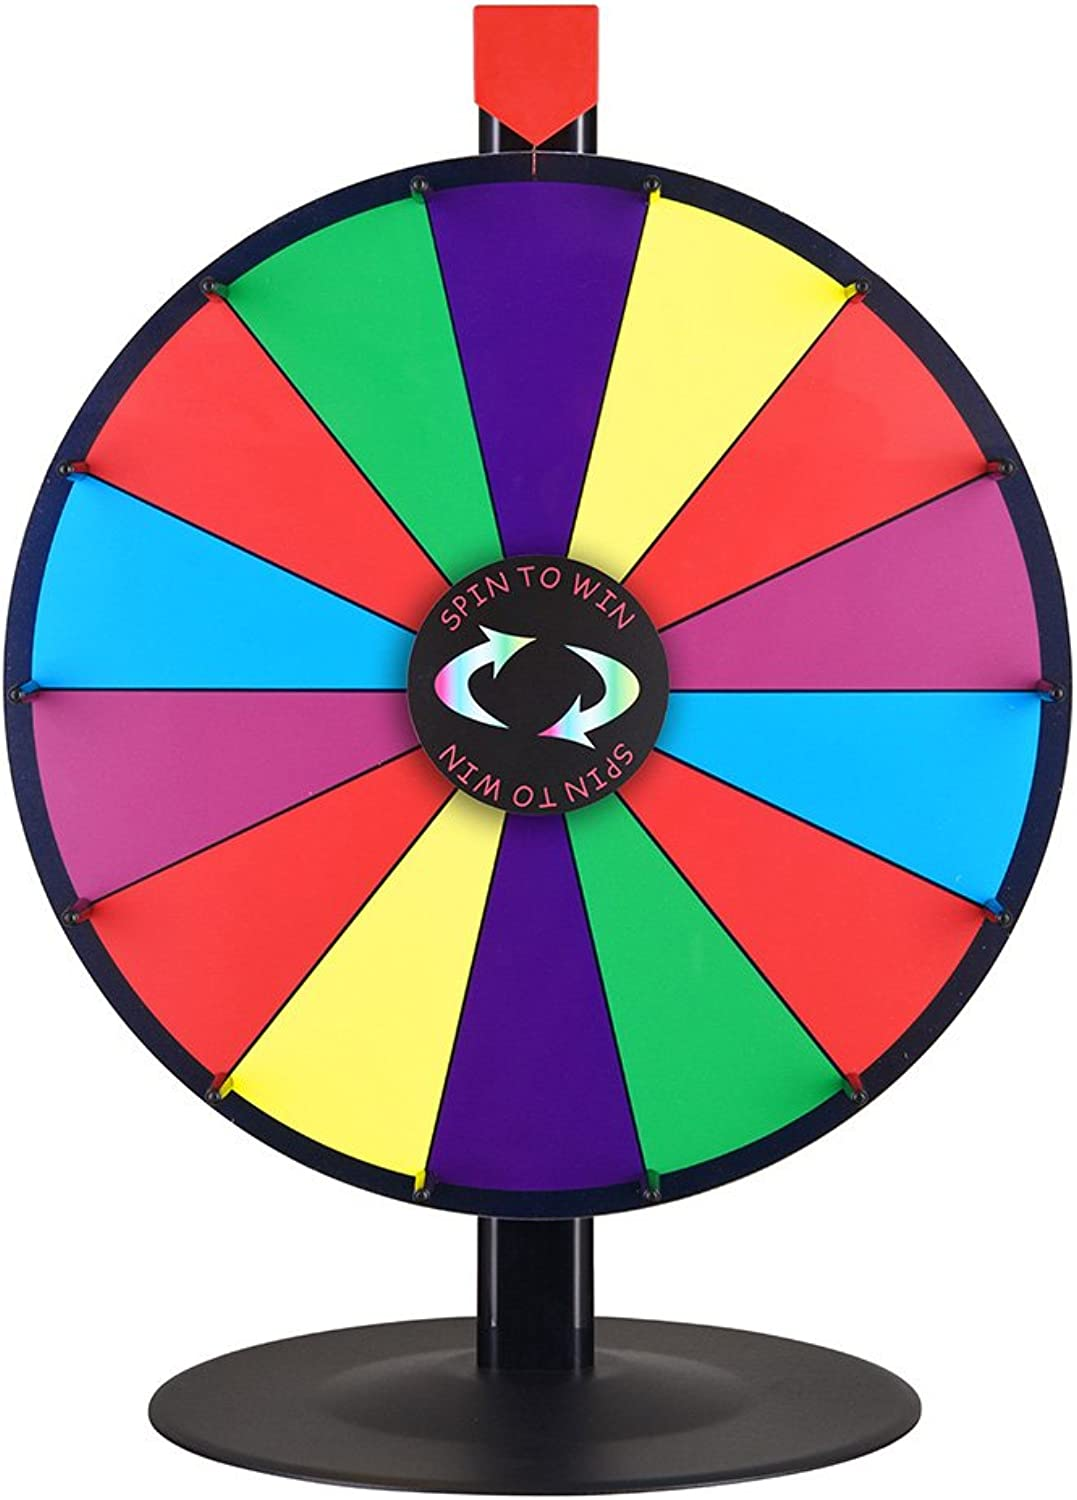 WinSpin 18 Inch Tabletop color Prize Wheel 14 Slot Spinning Game with Dry Erase Tradeshow Carnival